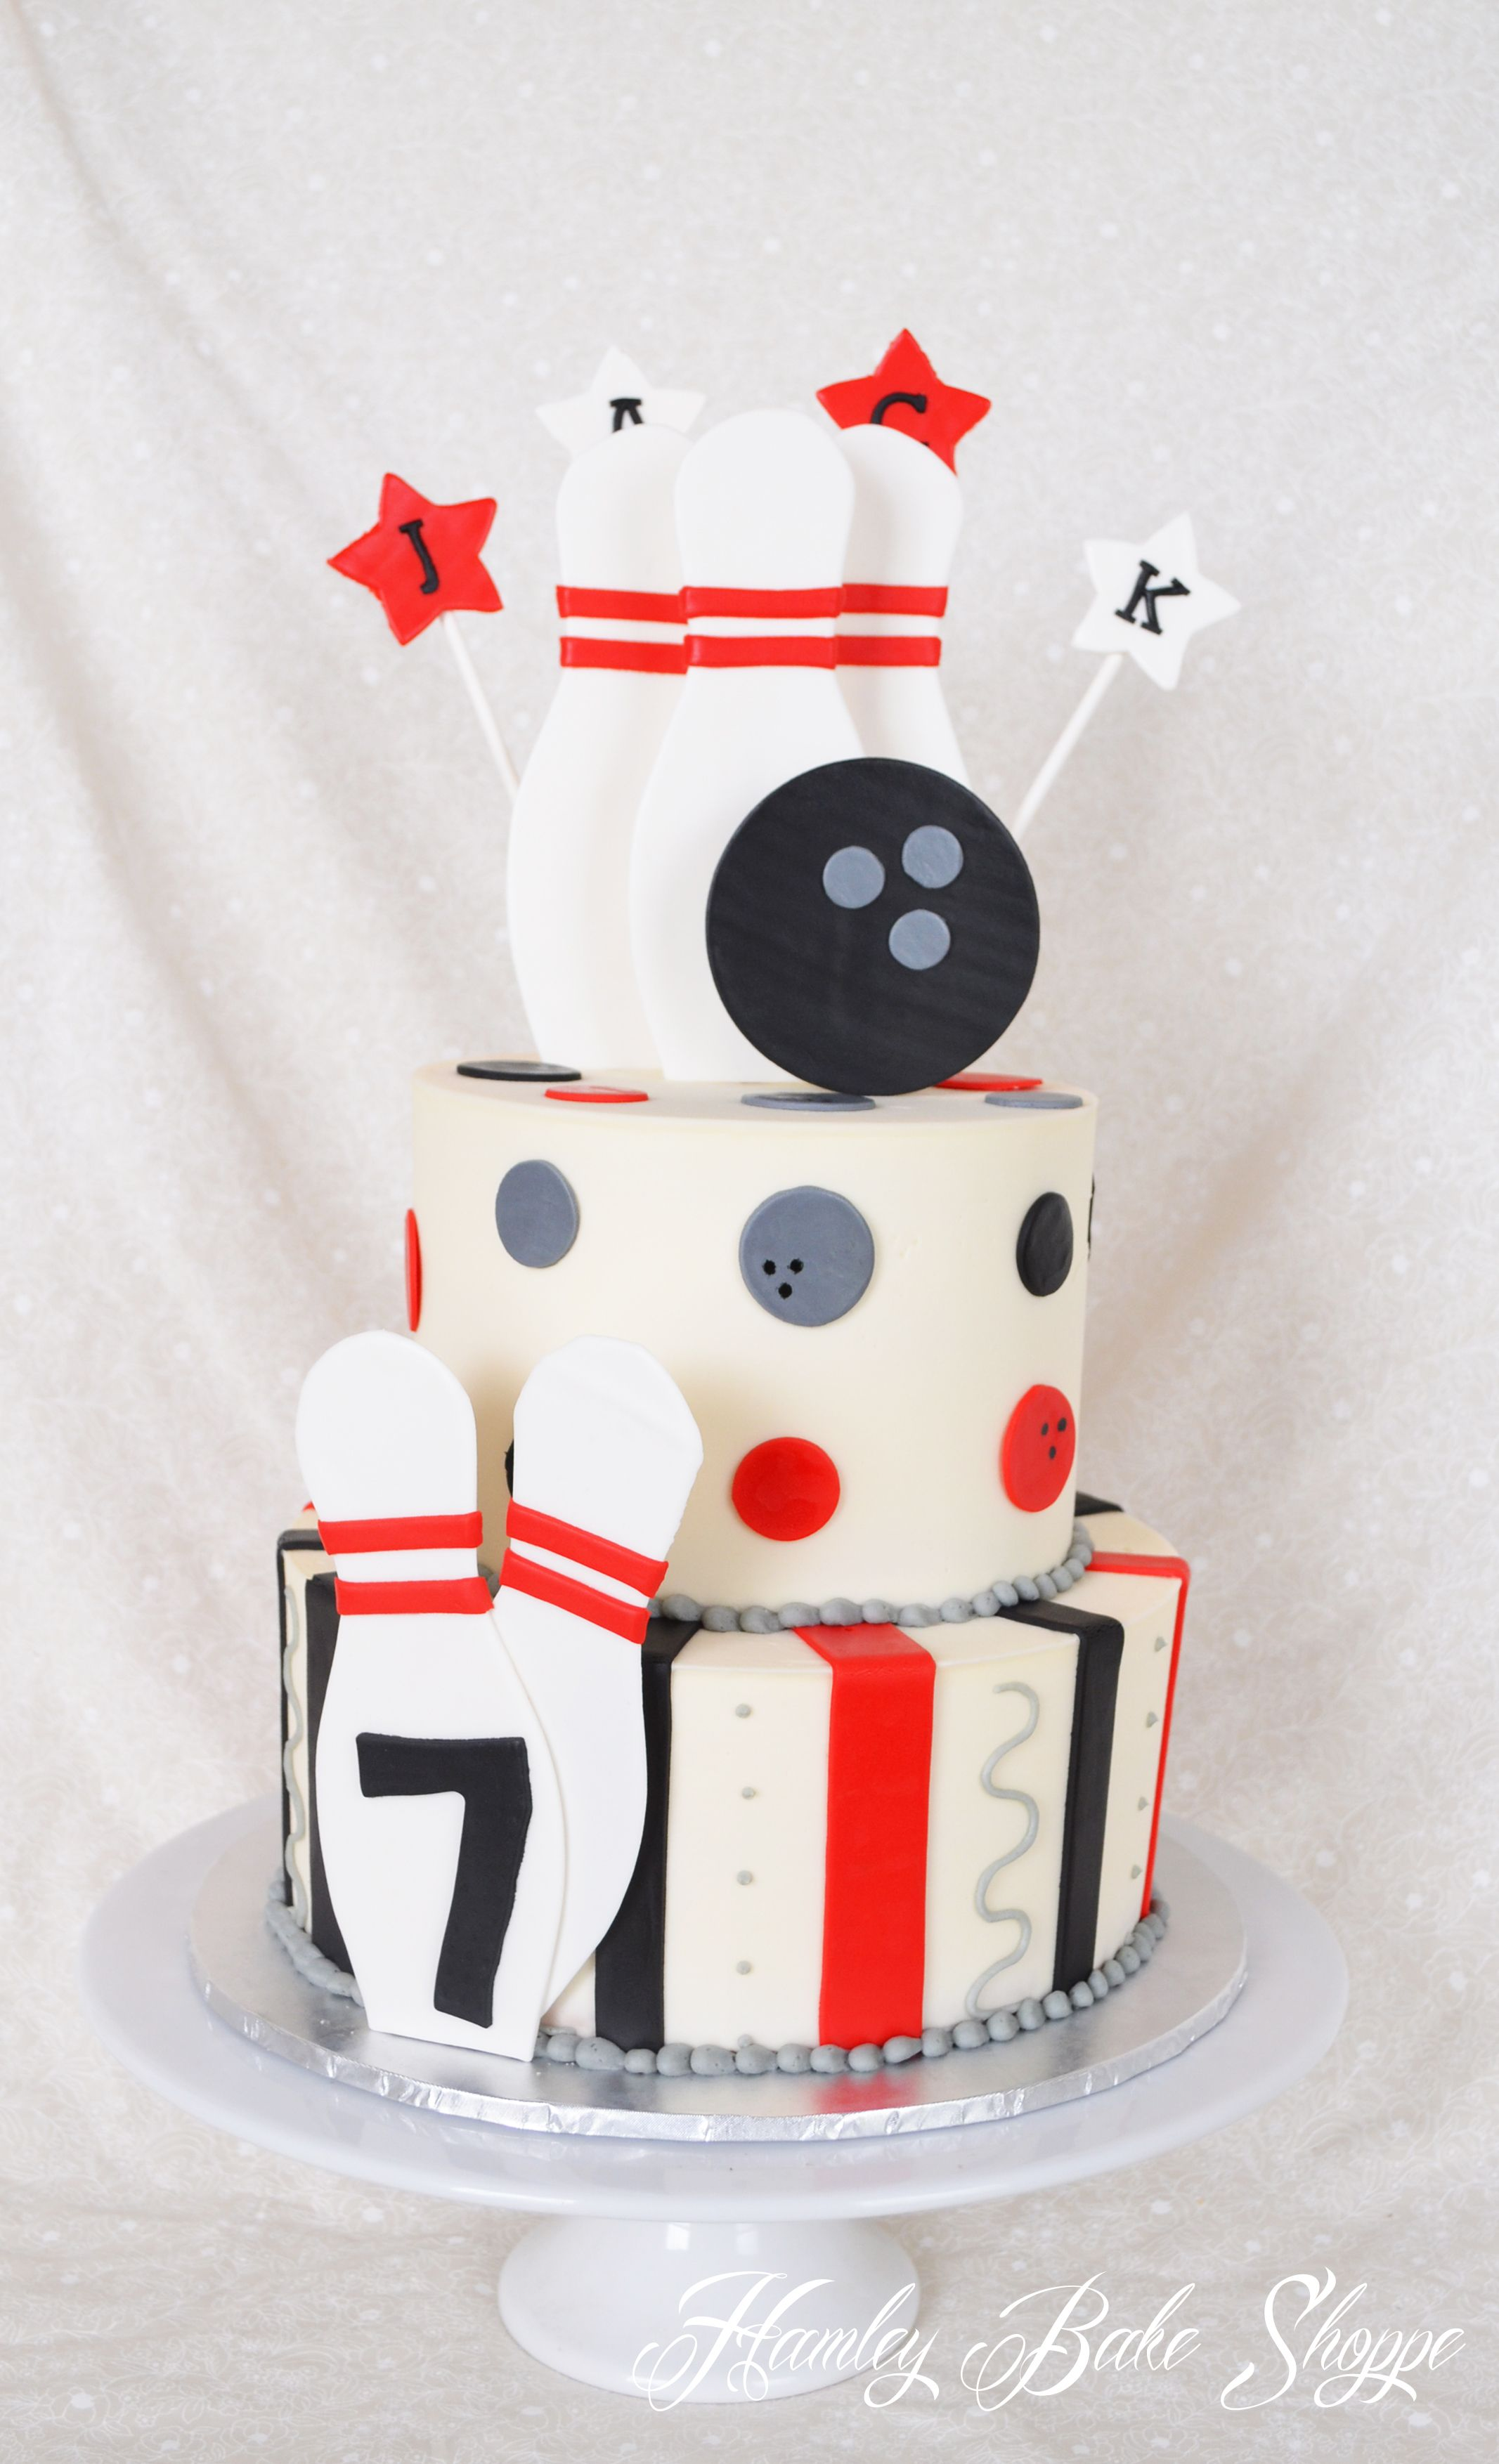 Bowling Birthday Cake Could Do With Just One Layer And Make The